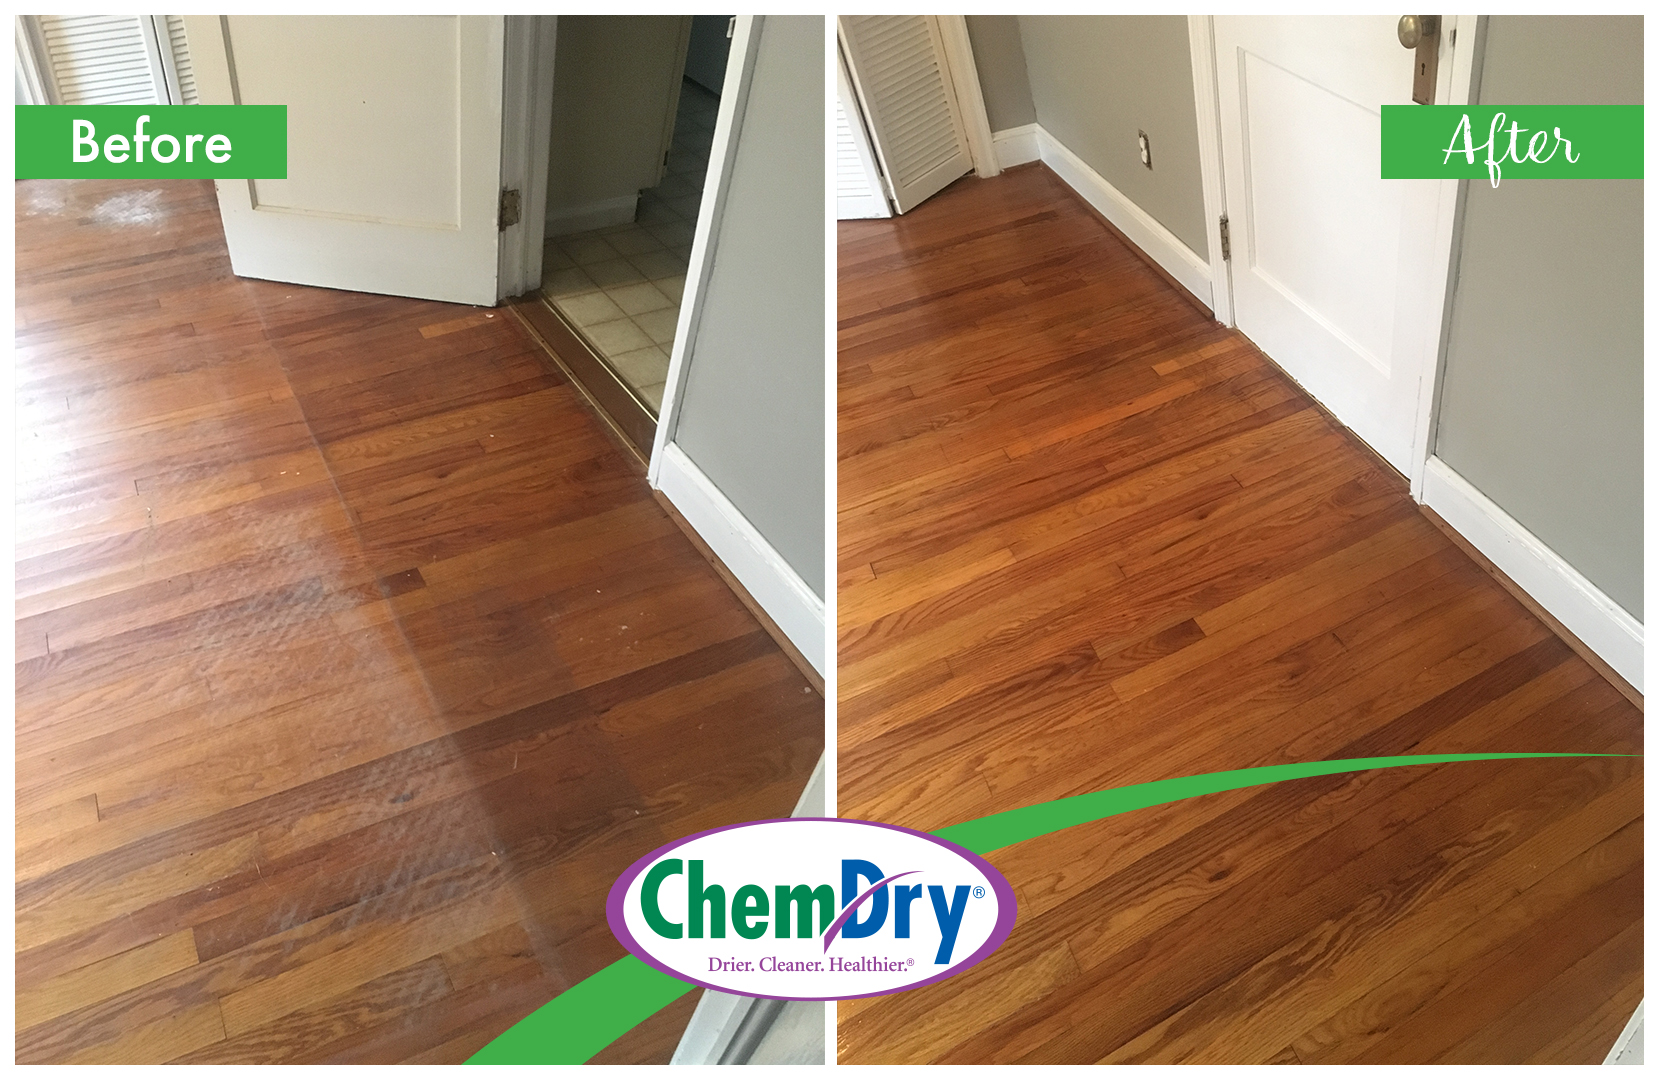 Hardwood Floor Cleaning Before and After All Star Chem-Dry